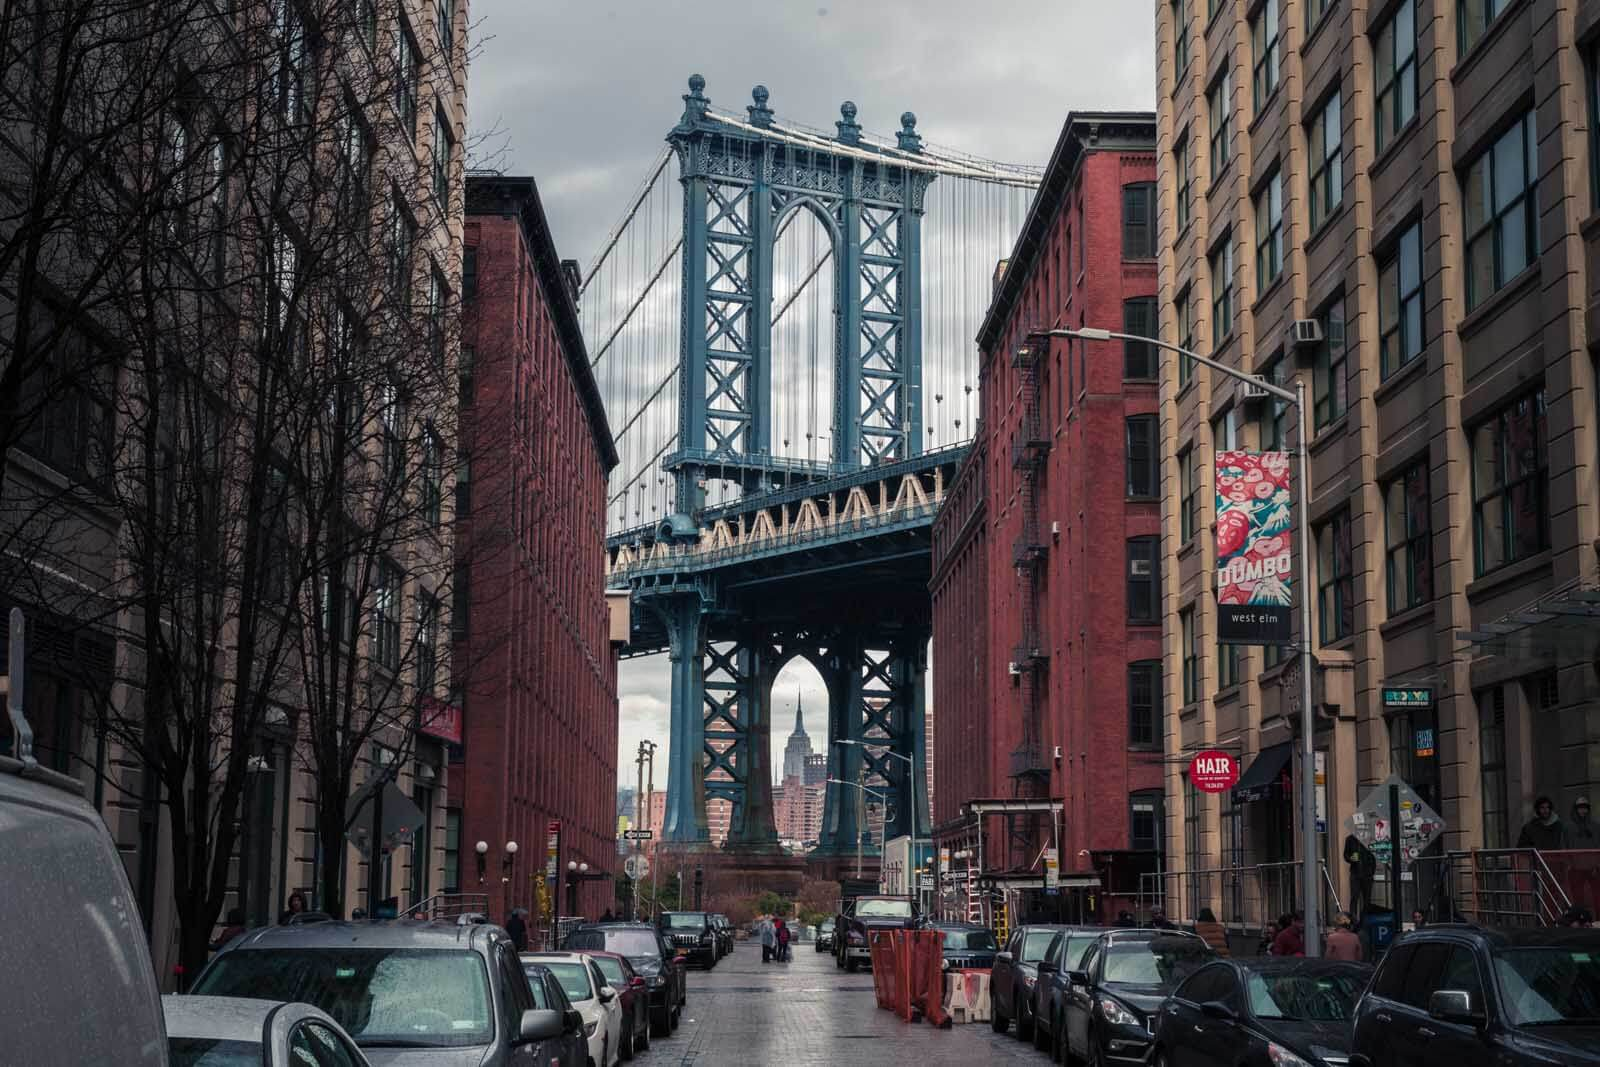 Manhattan Bridge and Empire State Building view in DUMBO Brooklyn